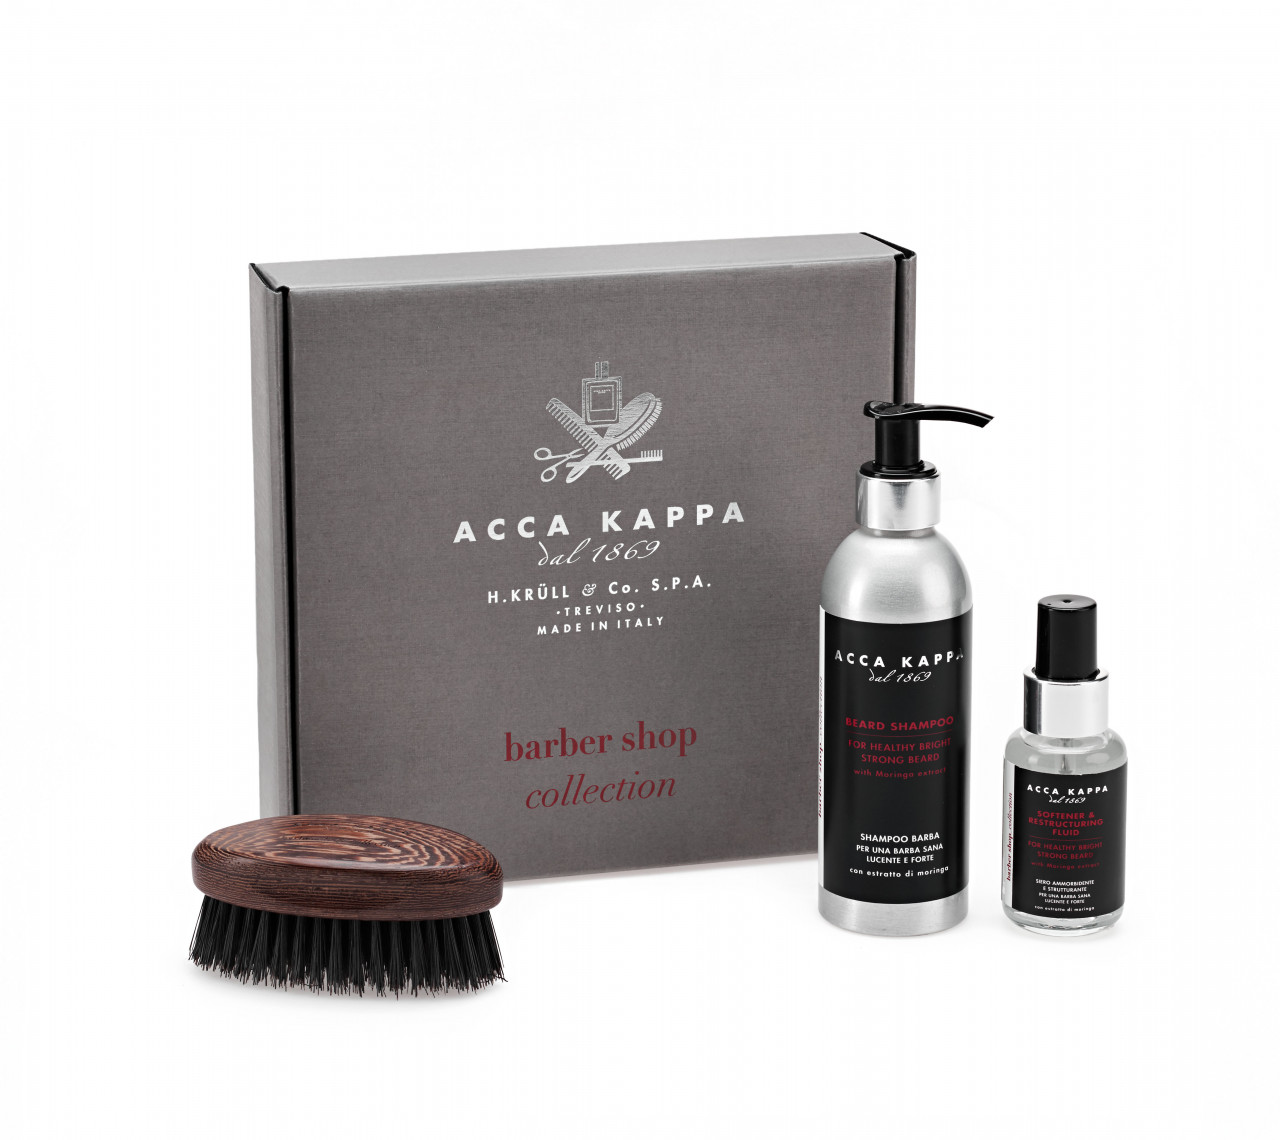 acca-kappa-barber-shop-collection-gift-set-bartpflege-set